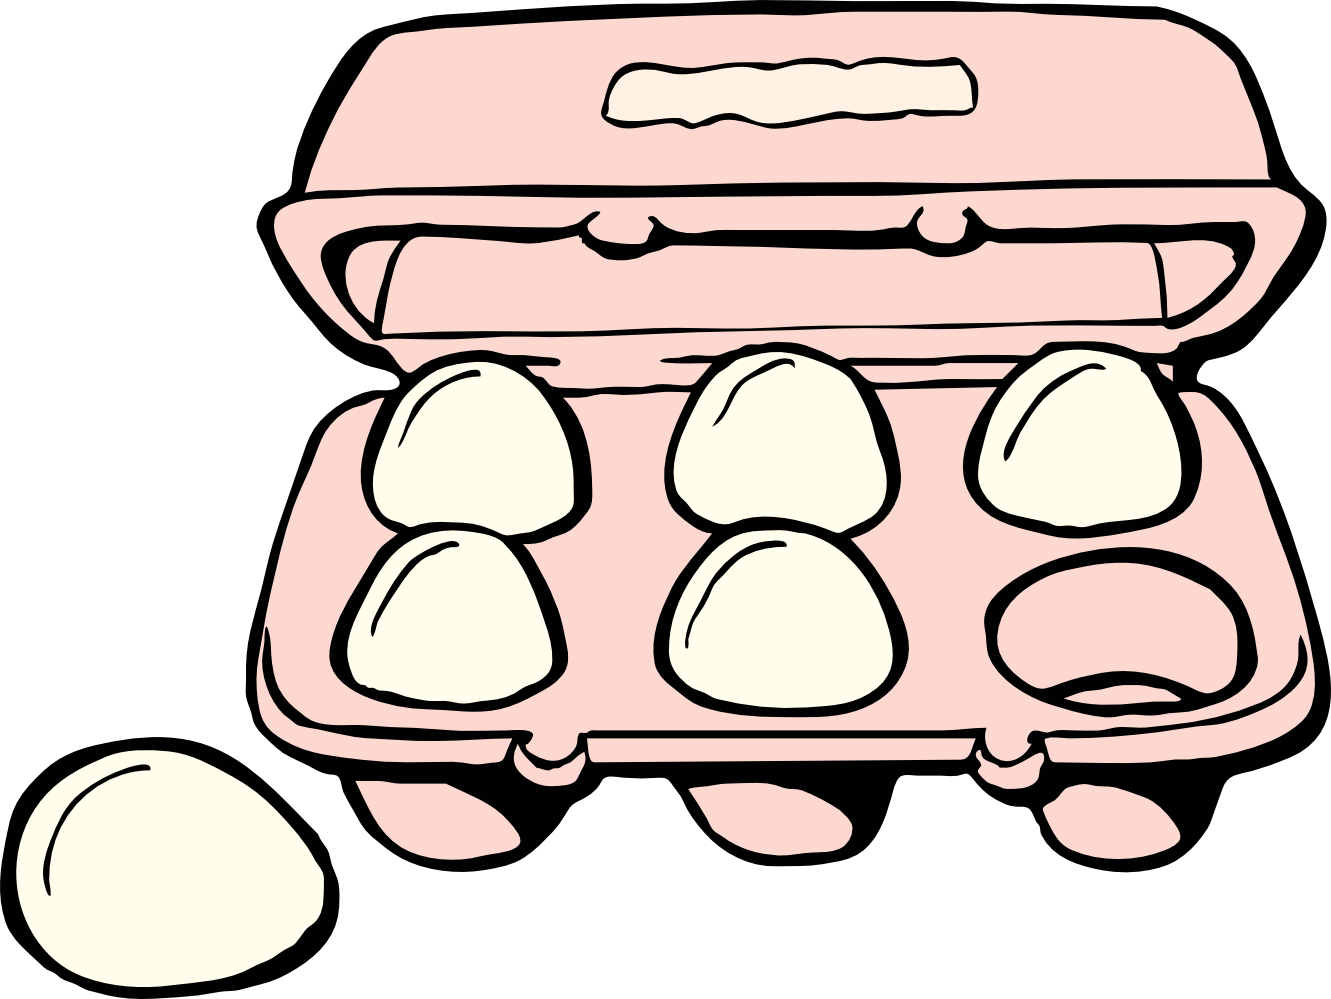 Egg clipart person. Fried at getdrawings com